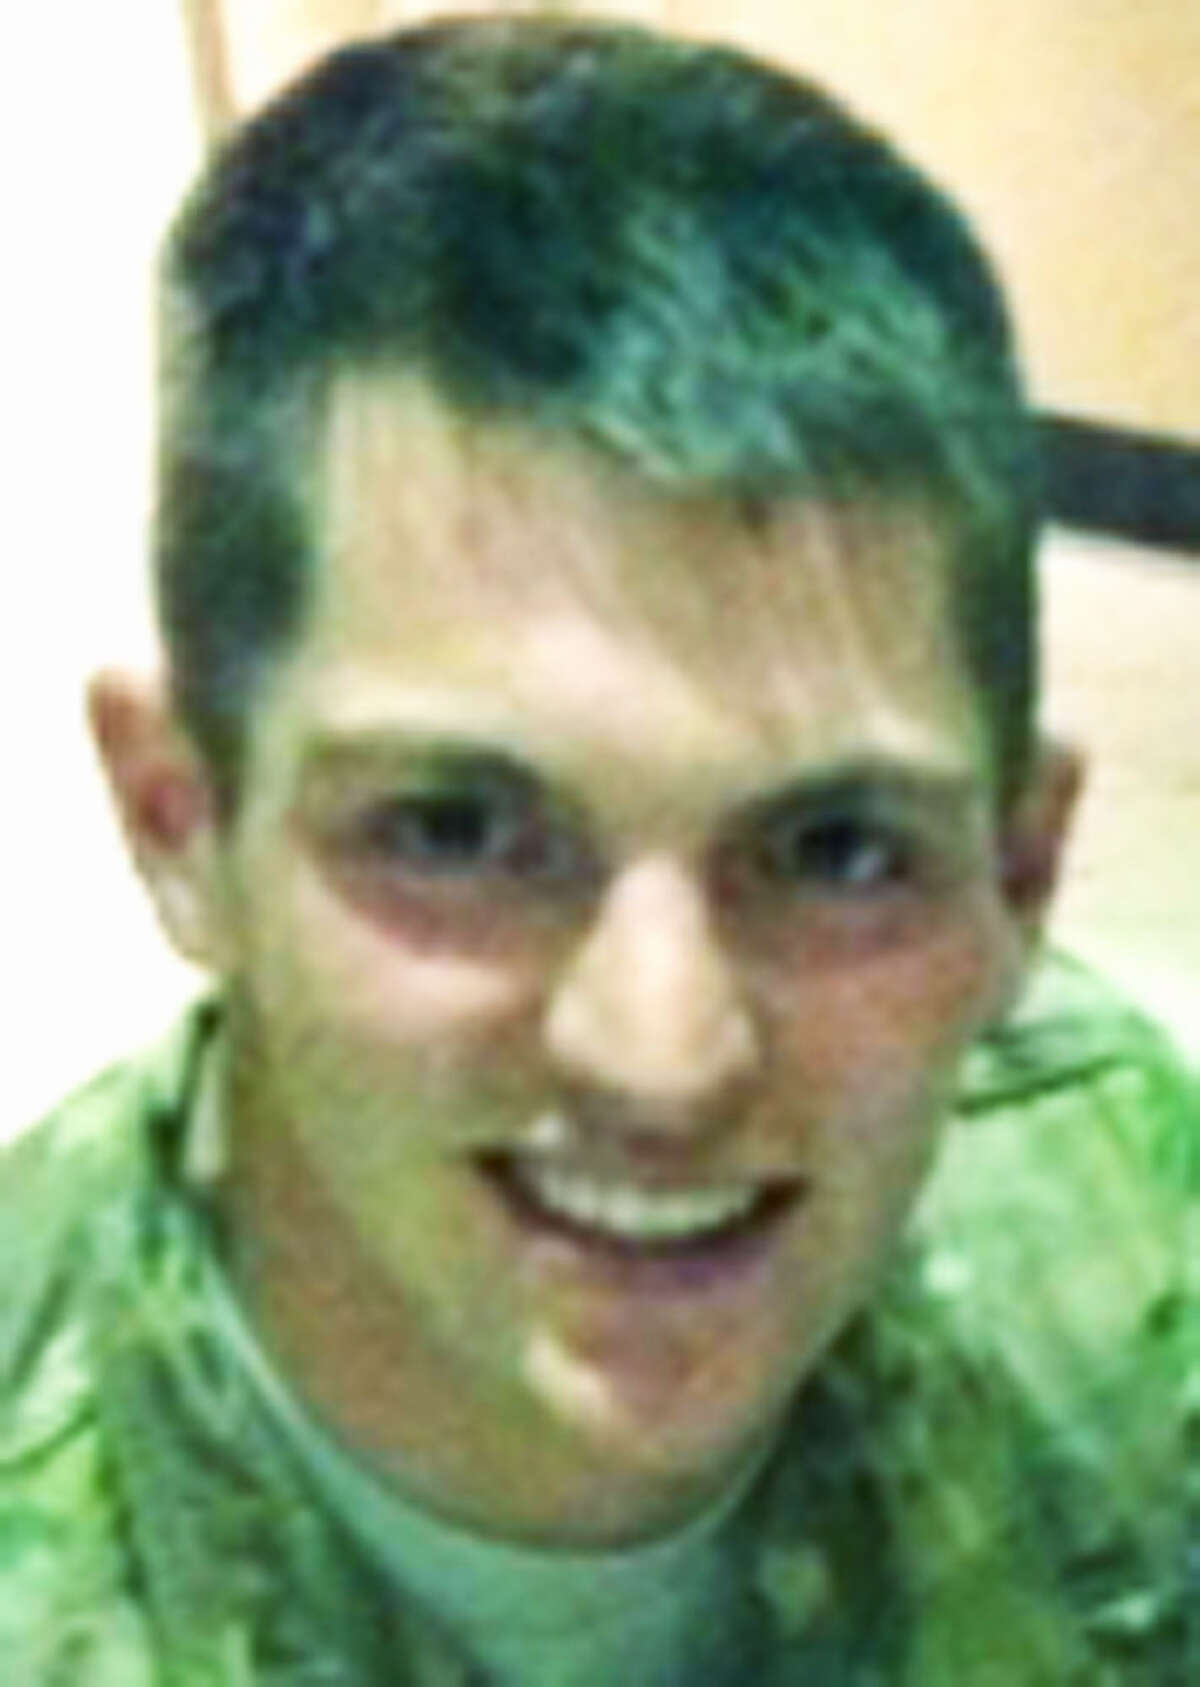 Staff Sgt. T.J. Lobraico Jr., a graduate of Sherman School, son of Sgt. Todd J. Lobraico and Maj. Linda (Strid) Rohatsch, and stepson of Dr. Robert Rohatsch and Dianne Lobraico, was killed in action while serving active duty in Afghanistan with the United States Air Force. He was born Nov. 23, 1990 in New Milford and was a 2008 graduate of New Fairfield High School. September 2013